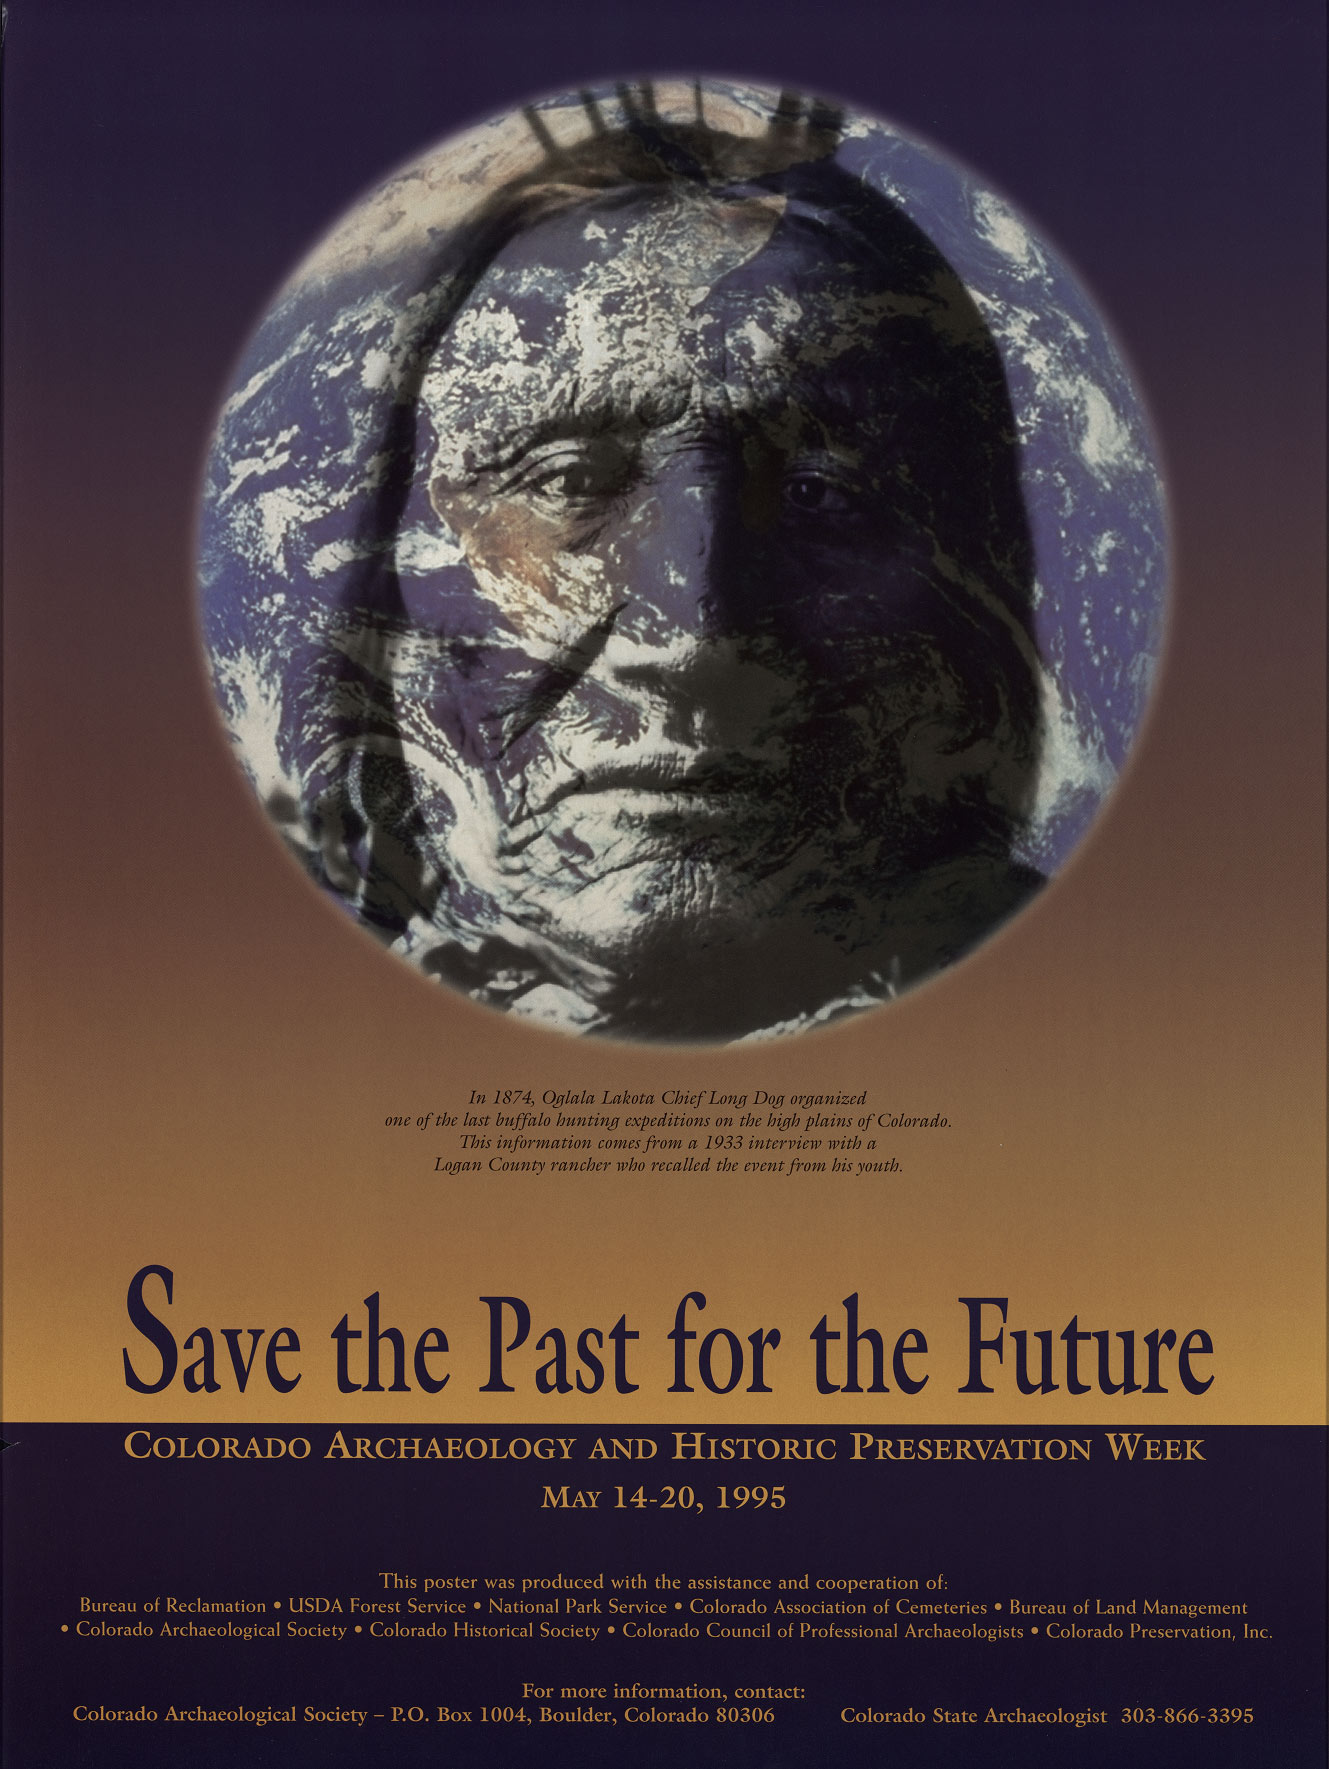 1995 Archaeology & Historic Preservation Week poster.